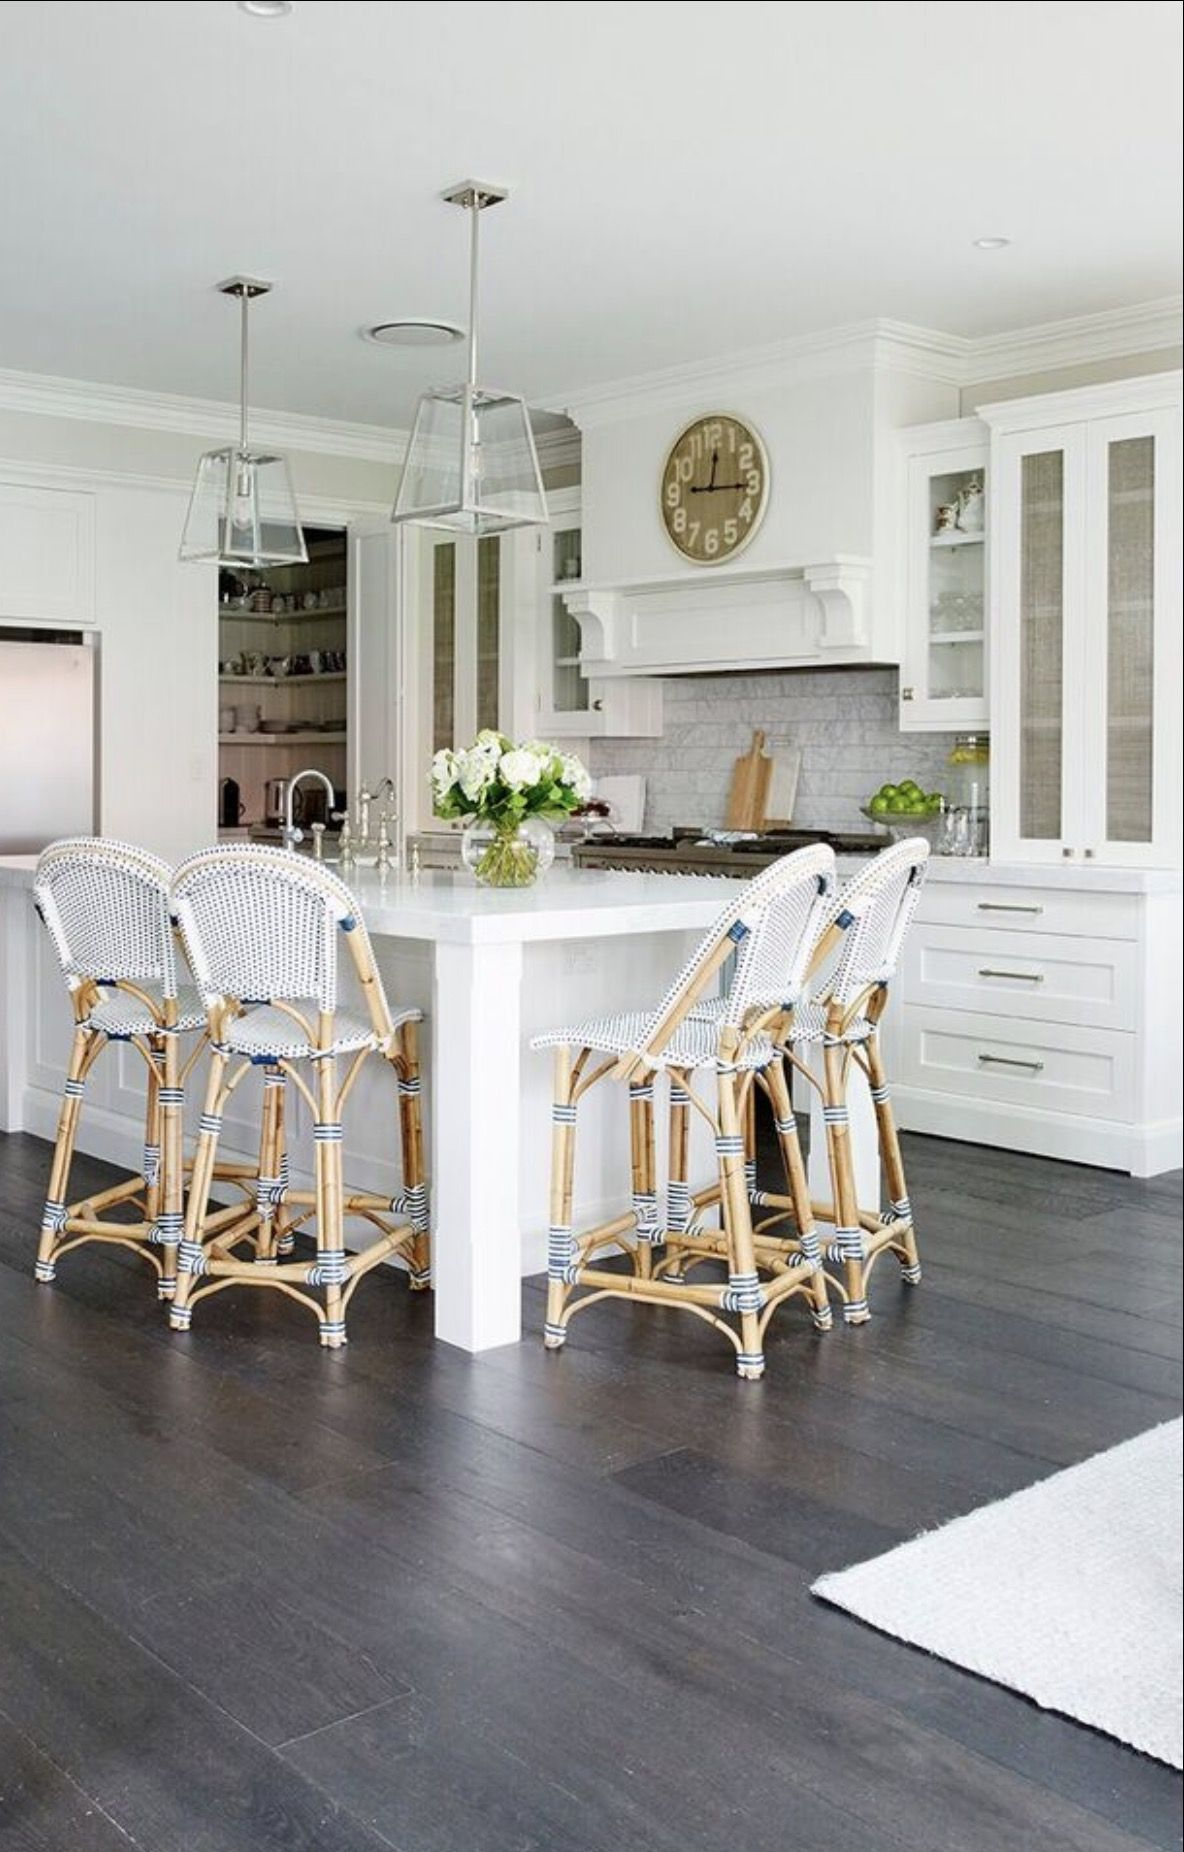 Featuring our French Bistro Counter Stools in Navy & White - Our Lovely Clients Kitchen. Featuring Our French Bistro Counter